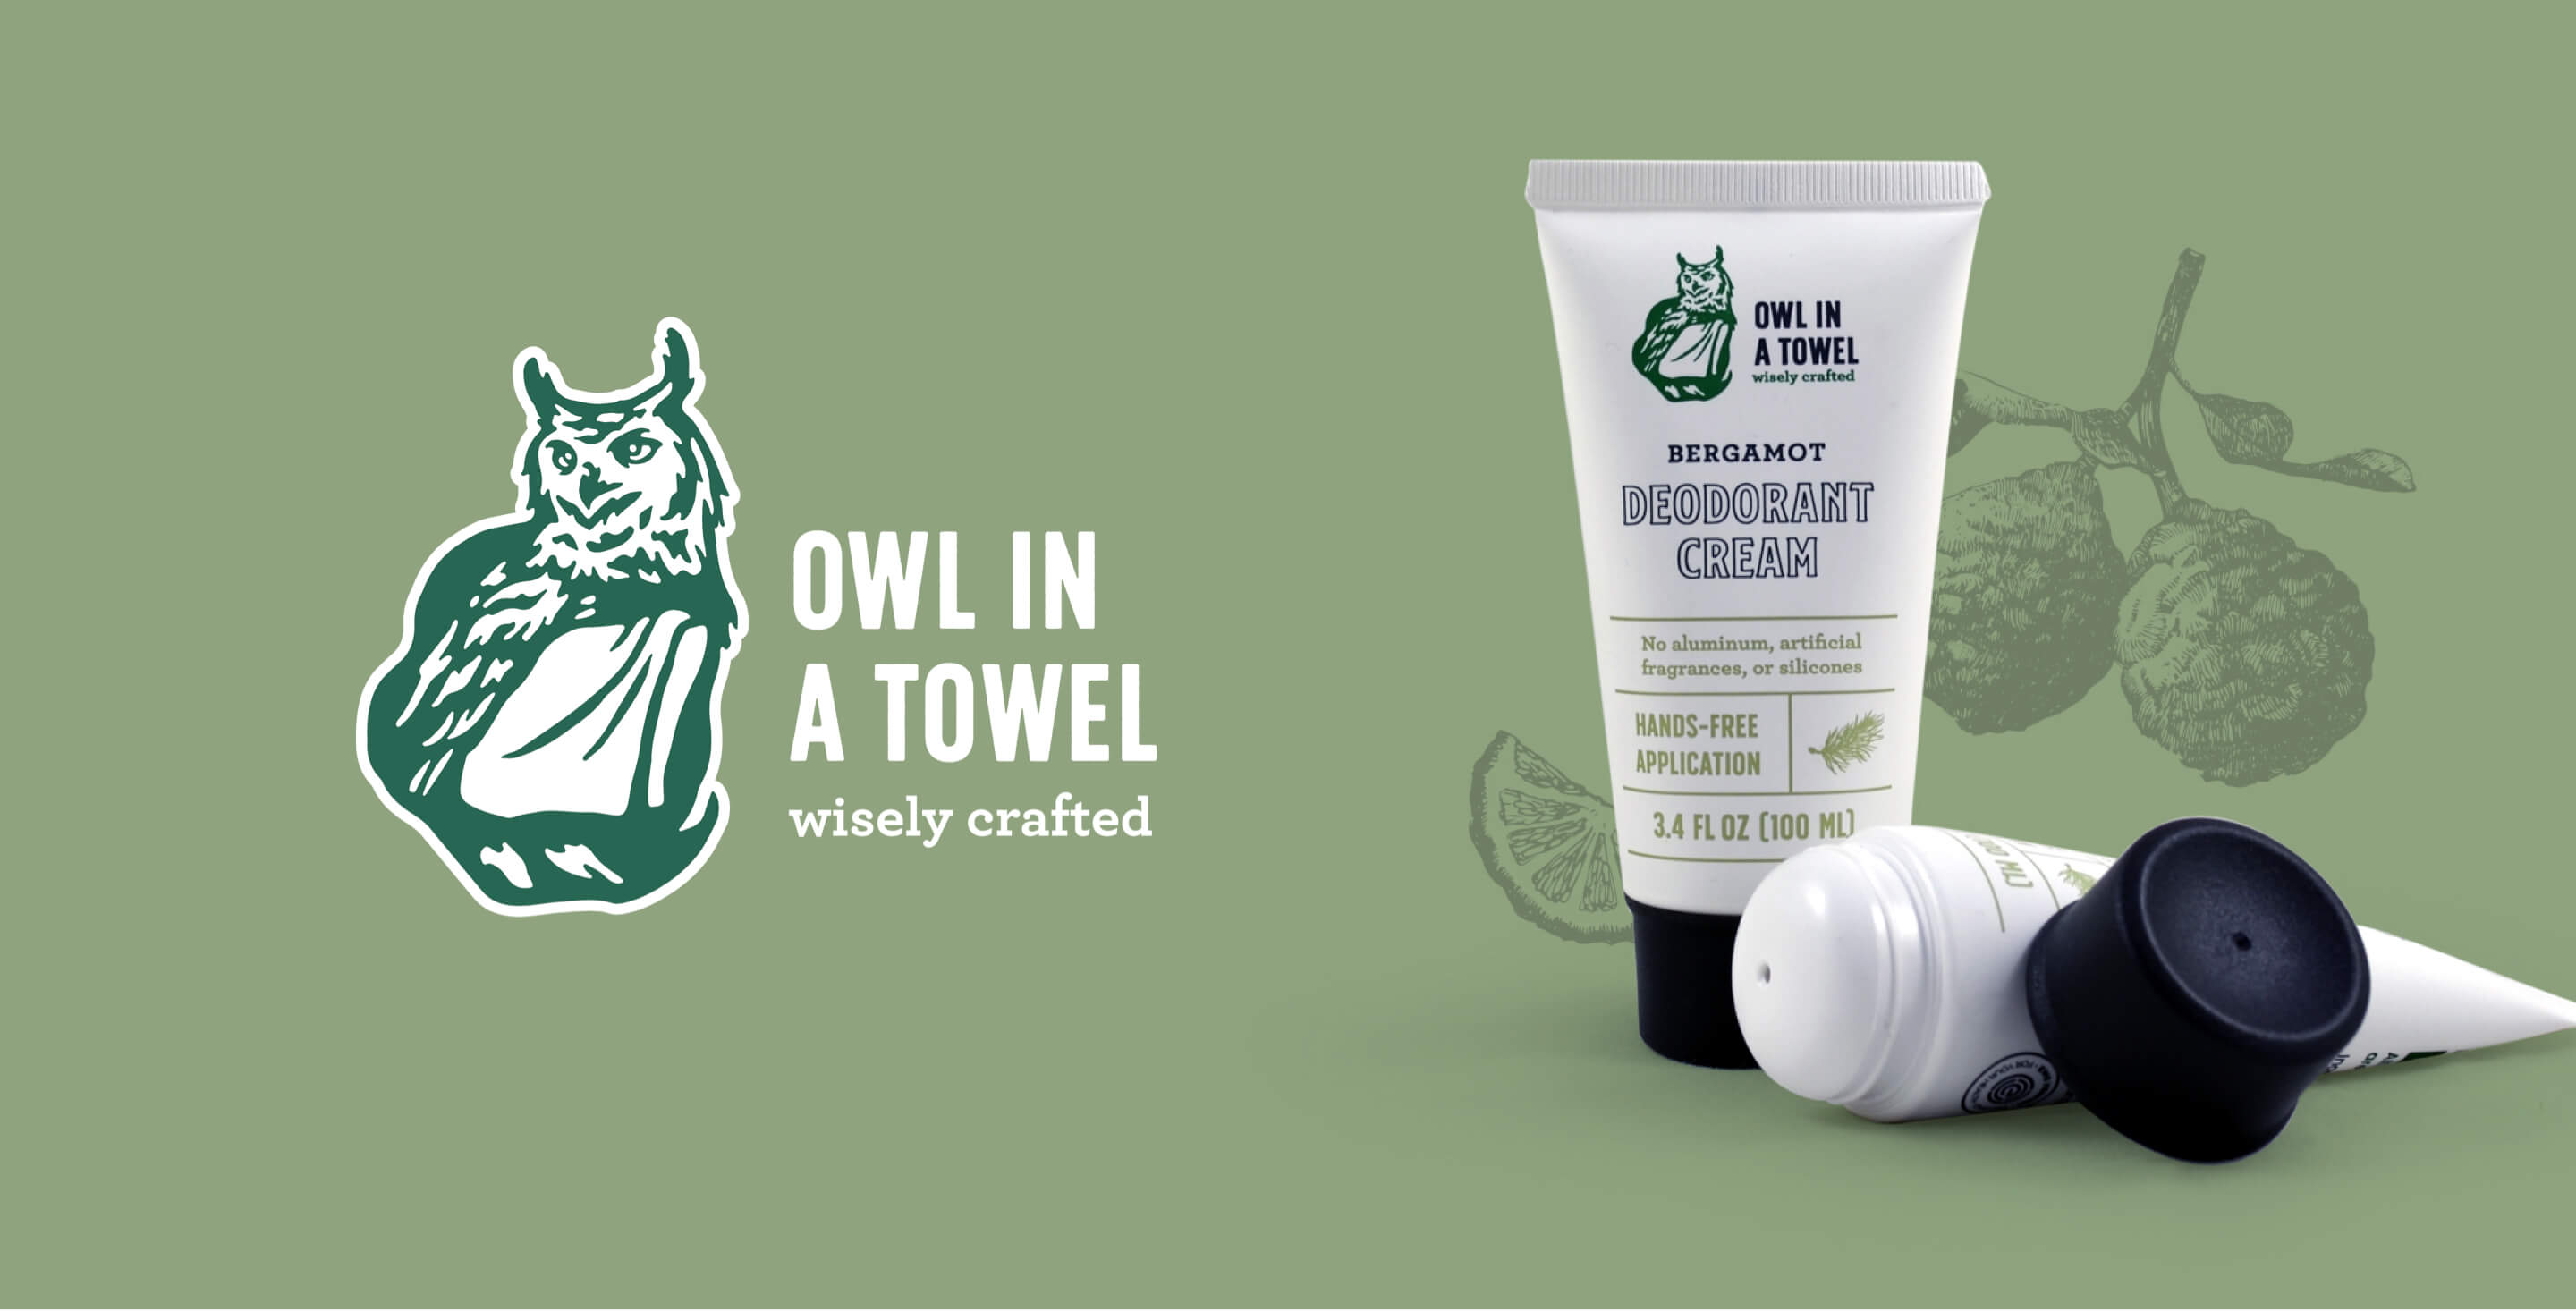 Owl in a Towel Cosmetic Branding